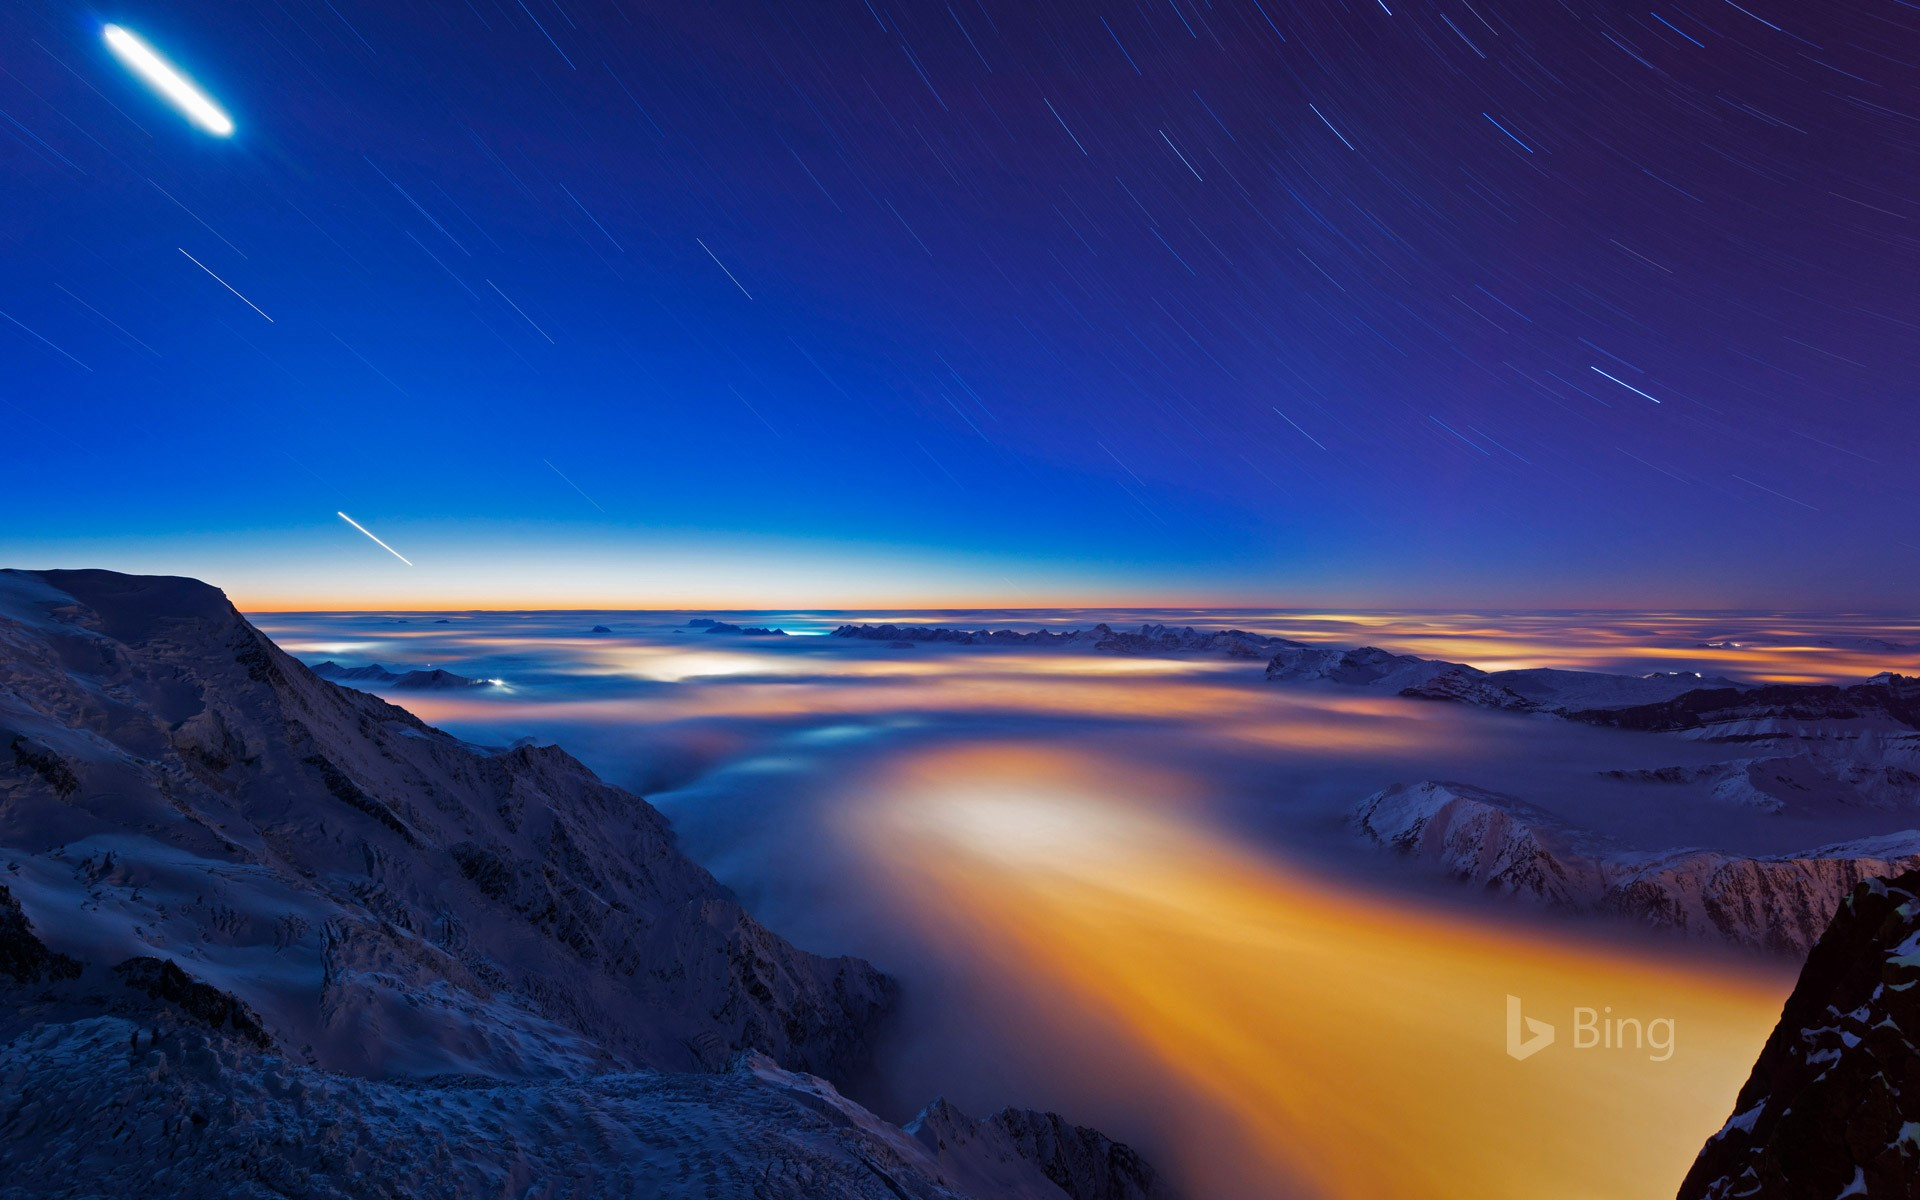 Sea of clouds over Chamonix Valley, France